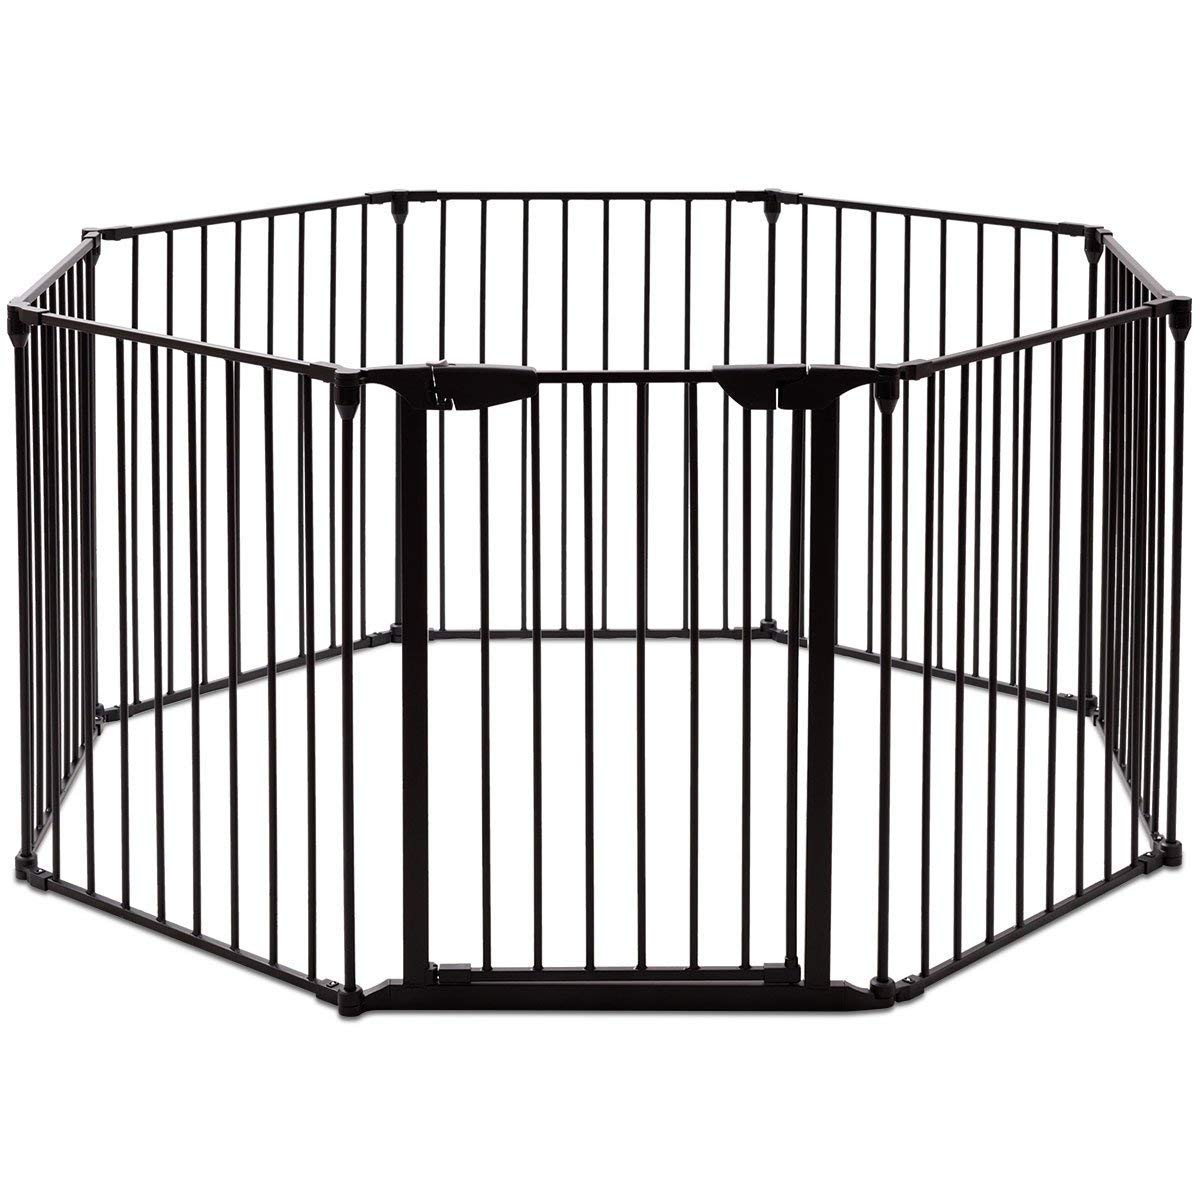 Costzon Baby Safety Gate, 4-in-1 Fireplace Fence, 204-Inch Wide Barrier with Walk-Through Door in Two Directions, Add Decrease Panels Directly, Wall-Mount Metal Gate for Pet Child Black, 8-Panel